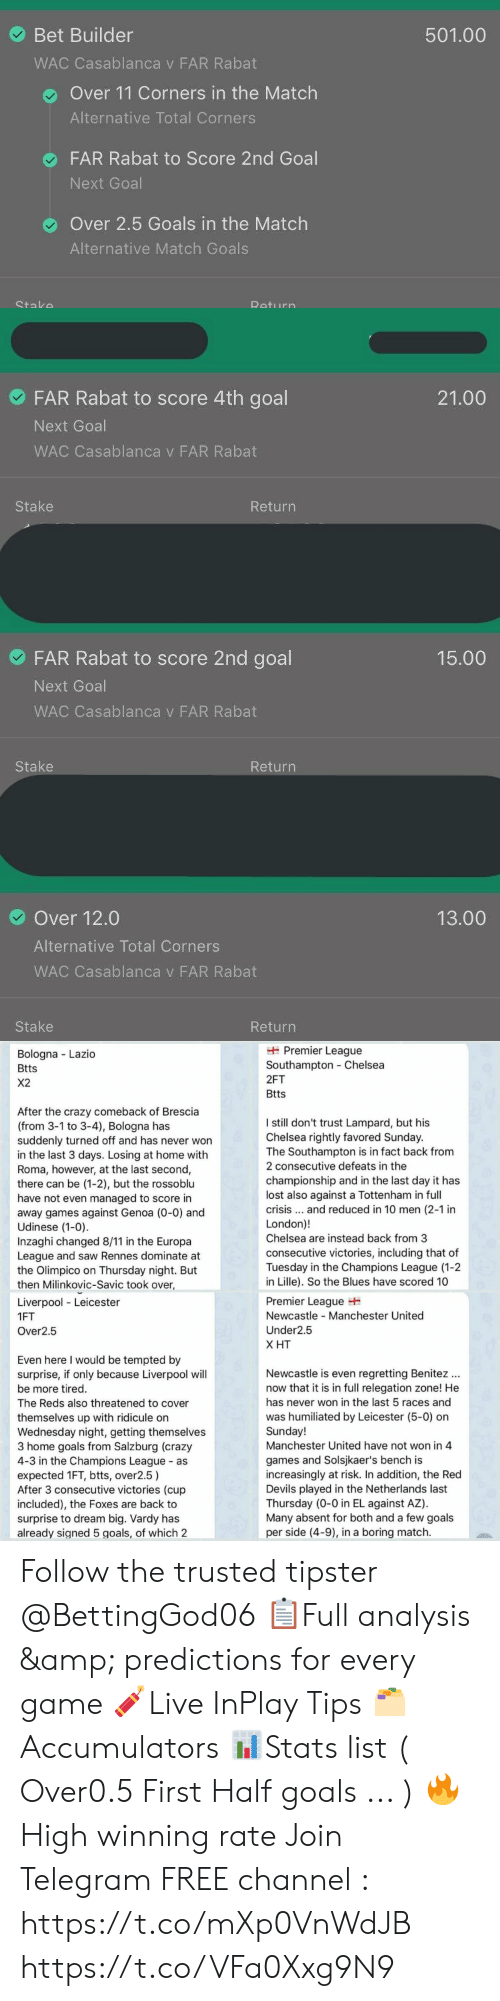 vardy: Bet Builder  501.00  WAC Casablanca v FAR Rabat  Over 11 Corners in the Match  Alternative Total Corners  FAR Rabat to Score 2nd Goal  Next Goal  Over 2.5 Goals in the Match  Alternative Match Goals   FAR Rabat to score 4th goal  21.00  Next Goal  WAC Casablanca v FAR Rabat  Stake  Return  FAR Rabat to score 2nd goal  15.00  Next Goal  WAC Casablanca v FAR Rabat  Stake  Return  Over 12.0  13.00  Alternative Total Corners  WAC Casablanca v FAR Rabat  Stake  Return   Premier League  Southampton Chelsea  Bologna Lazio  Btts  2FT  X2  Btts  After the crazy comeback of Brescia  (from 3-1 to 3-4), Bologna has  suddenly turned off and has never won  in the last 3 days. Losing at home with  Roma, however, at the last second,  there can be (1-2), but the rossoblu  have not even managed to score in  away games against Genoa (0-0) and  Udinese (1-0).  Inzaghi changed 8/11 in the Europa  League and saw Rennes dominate at  the Olimpico on Thursday night. But  then Milinkovic-Savic took over,  I still don't trust Lampard, but his  Chelsea rightly favored Sunday.  The Southampton is in fact back from  2 consecutive defeats in the  championship and in the last day it has  lost also against a Tottenham in full  crisis... and reduced in 10 men (2-1 in  London)!  Chelsea are instead back from 3  consecutive victories, including that of  Tuesday in the Champions League (1-2  in Lille). So the Blues have scored 10  Premier League  Newcastle Manchester United  Liverpool Leicester  1FT  Under2.5  Over2.5  Х Т  Even here I would be tempted by  surprise, if only because Liverpool will  Newcastle is even regretting Benitez  now that it is in full relegation zone! He  be more tired.  has never won in the last 5 races and  The Reds also threatened to cover  was humiliated by Leicester (5-0) on  Sunday!  Manchester United have not won in 4  themselves up with ridicule on  Wednesday night, getting themselves  3 home goals from Salzburg (crazy  4-3 in the Champions League as  expected 1FT,